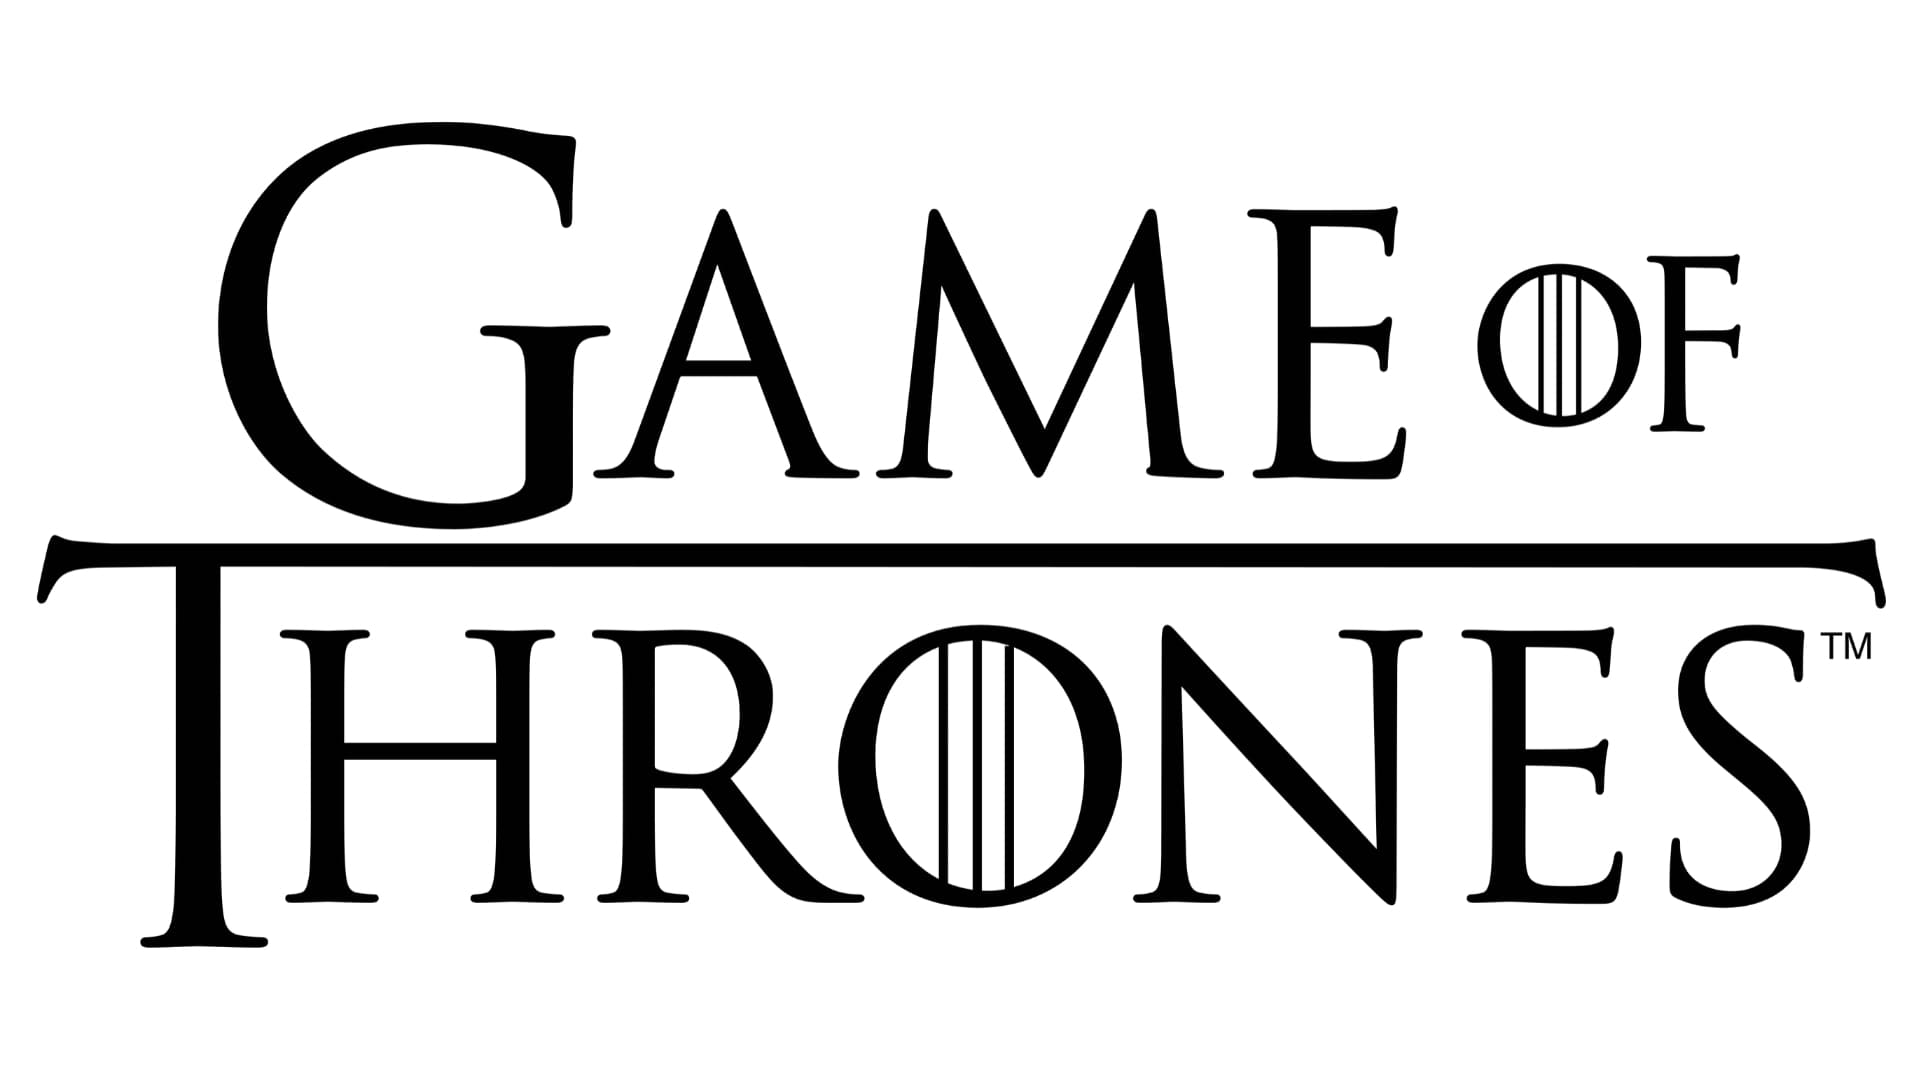 Games of thrones images